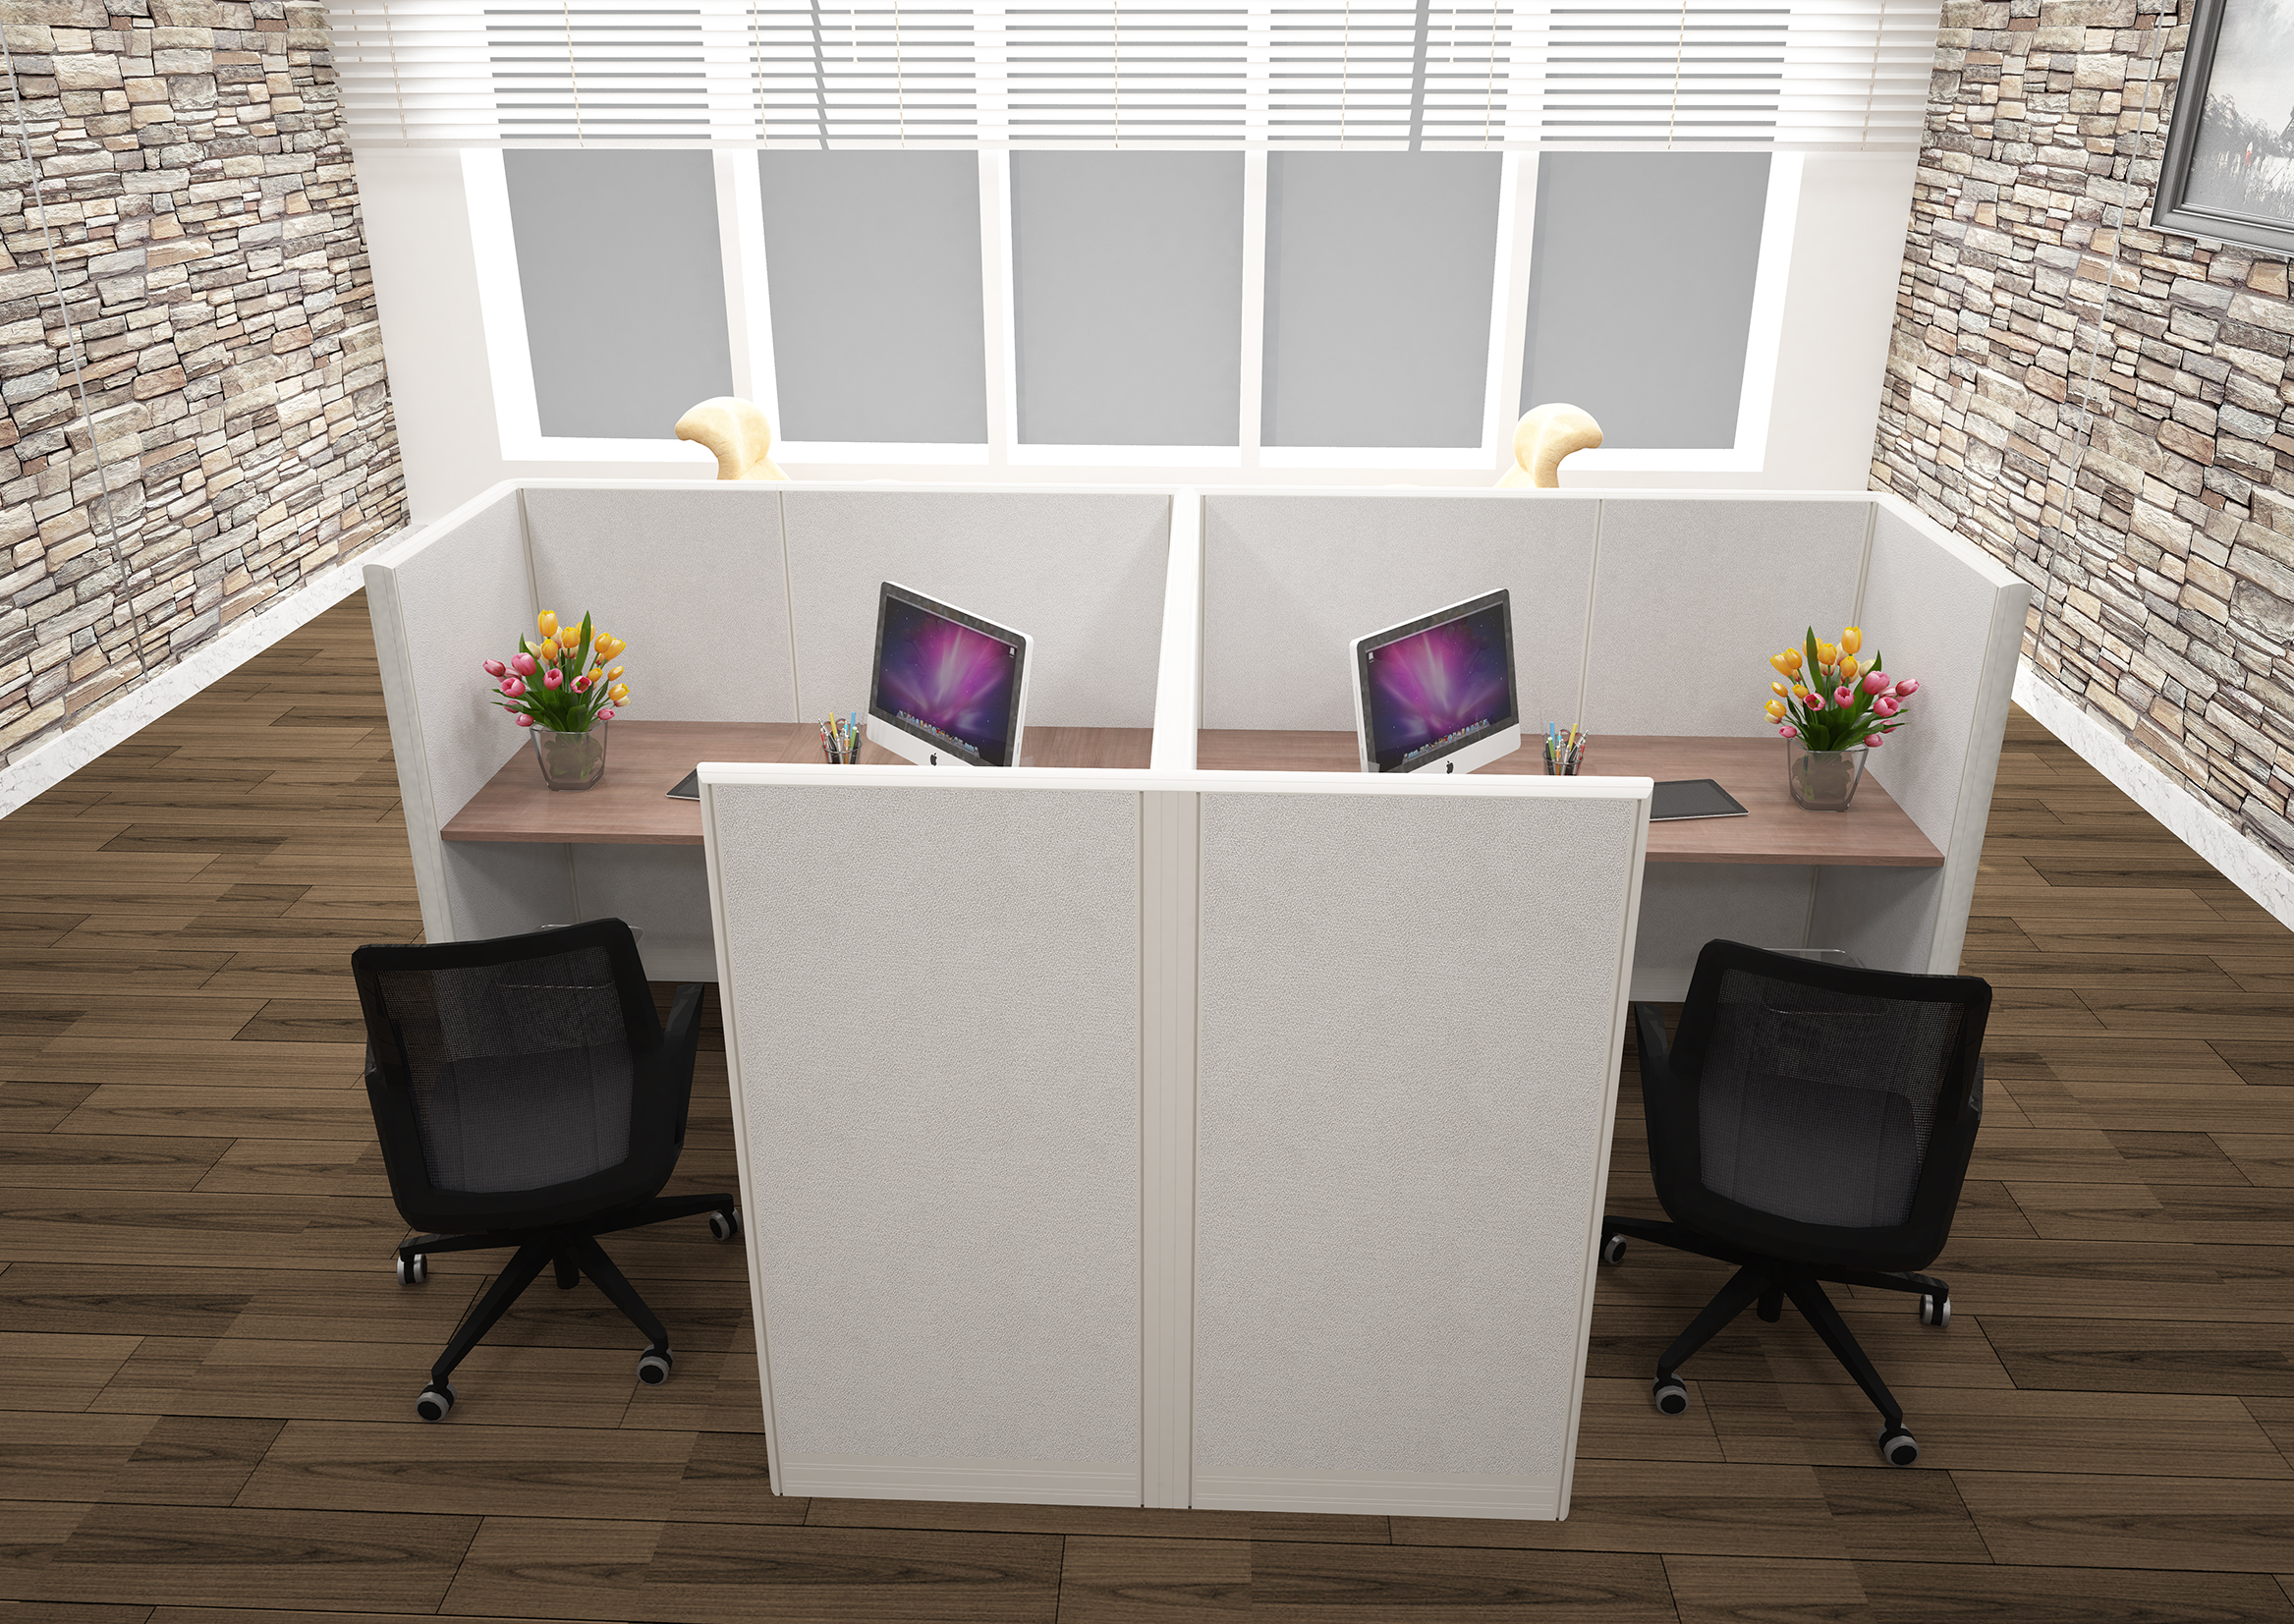 Two Man L Shape Mirror Fully Fabric Cubicles 6 X 6 X 51 Your Sourcing Partner